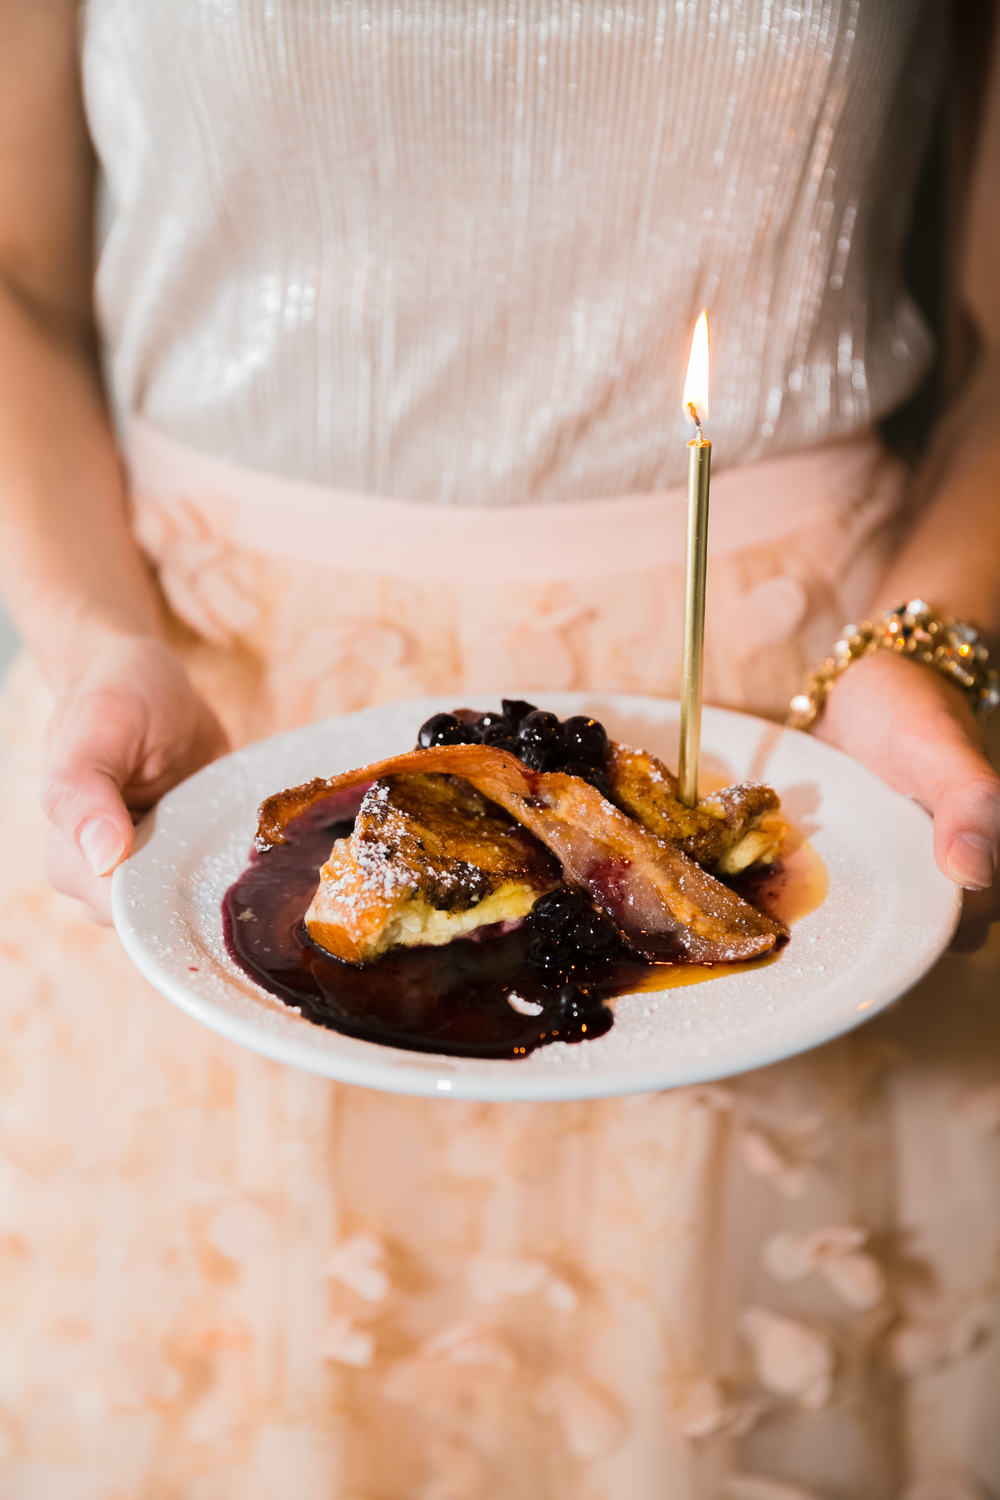 Yes, that is French Toast topped with bacon, blueberries and powdered sugar with mascarpone in between. Yum! Each piece was hand delivered to every guest with a candle glowing. I wanted each guest to feel honored and celebrated, which made this one of my favorite party moments. French Toast by Trattoria Centrale.